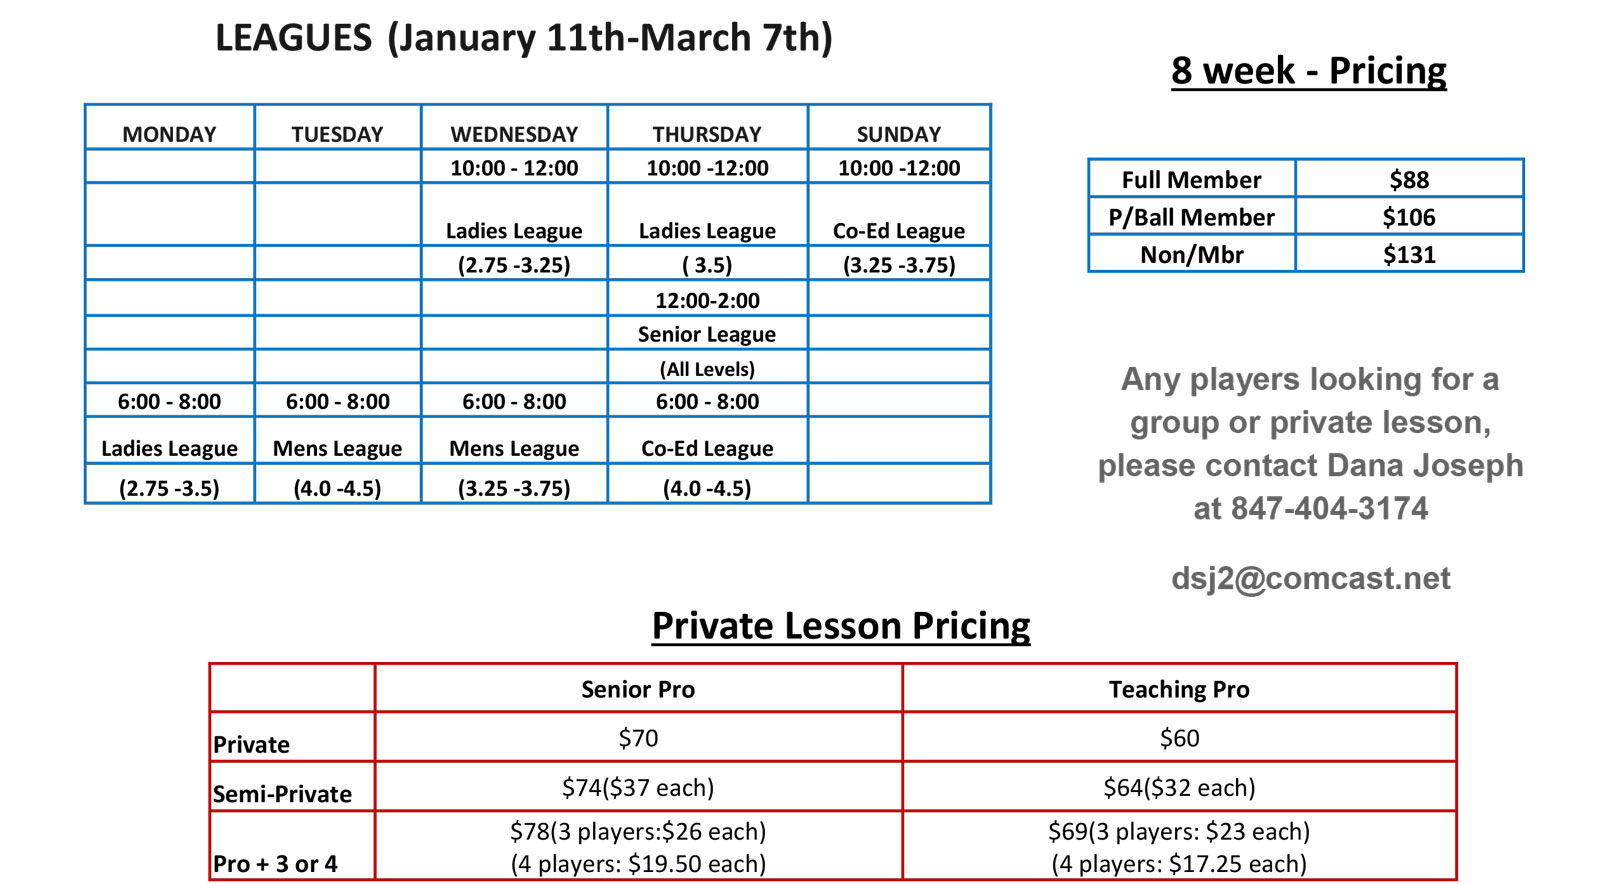 Sky Fitness Chicago - United Pickleball Management - UPM Pickleball - Lessons Leagues Pricing